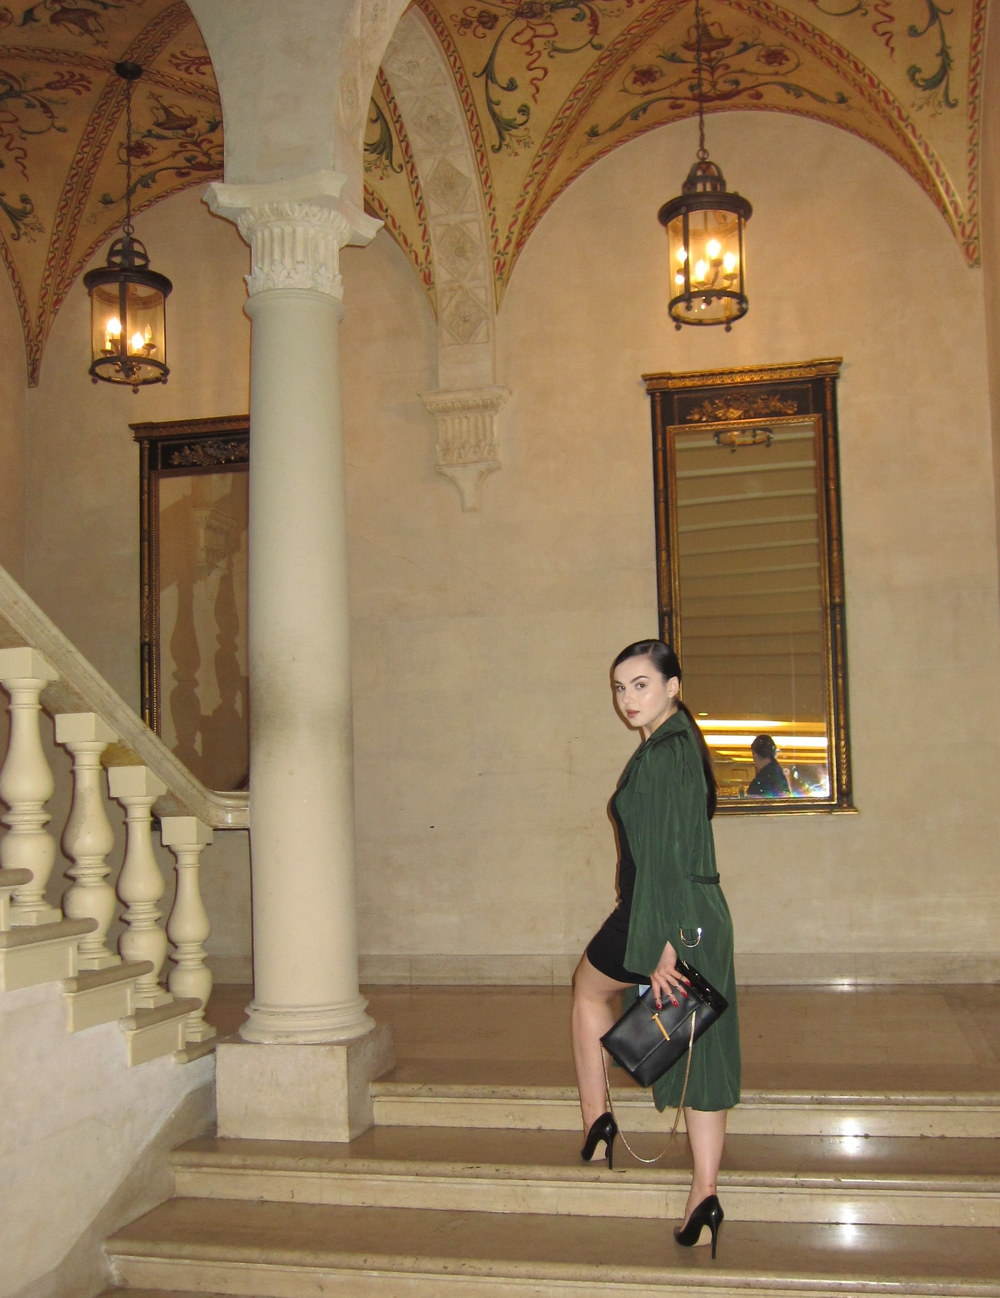 Opj Olga parkers jewelry_Plaza hotel_Fall15_GreenTrenchCoat4767.jpg